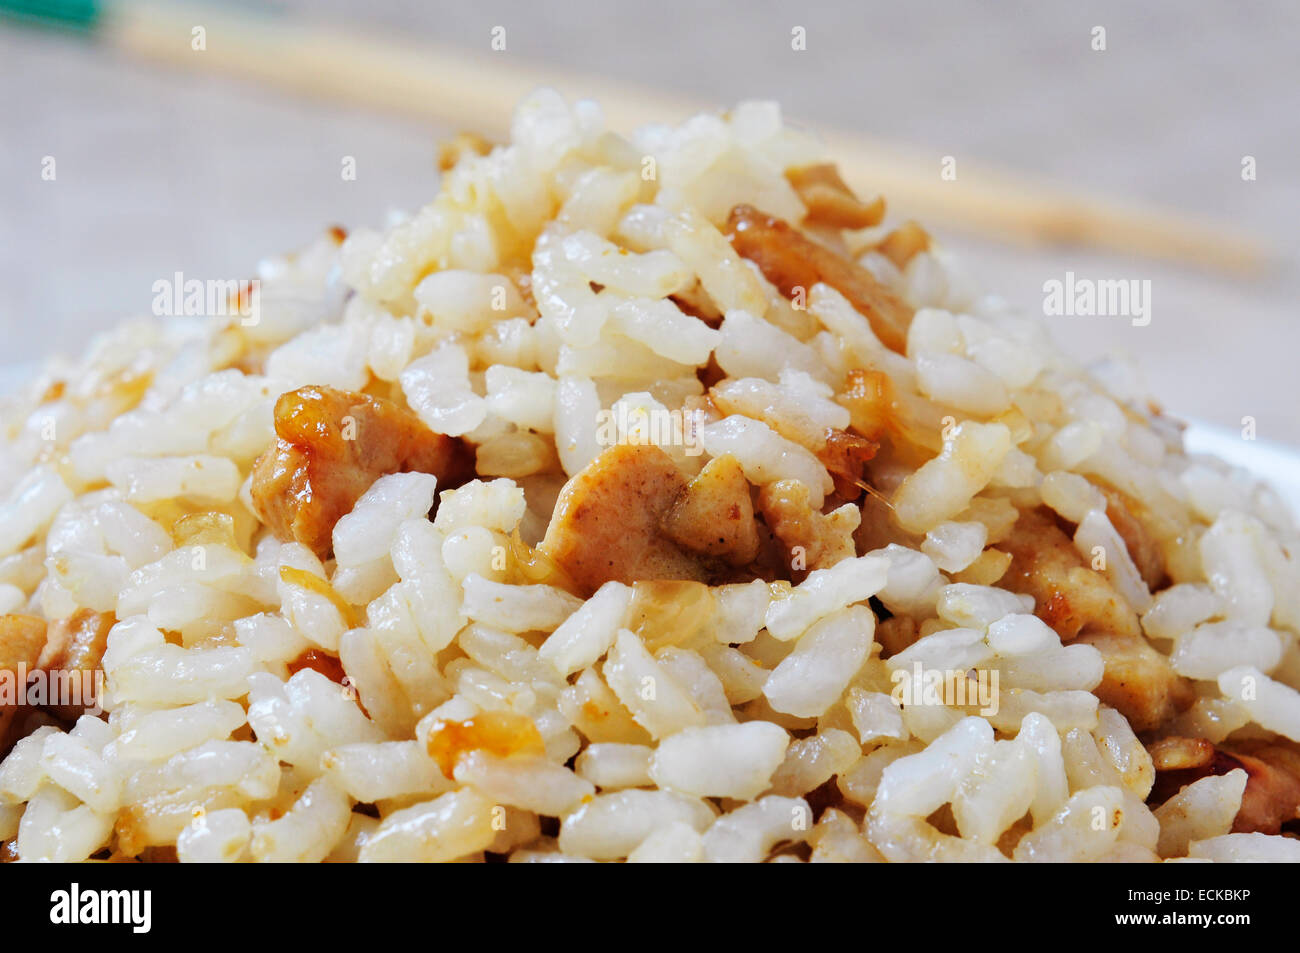 closeup of a plate with chicken fried rice - Stock Image